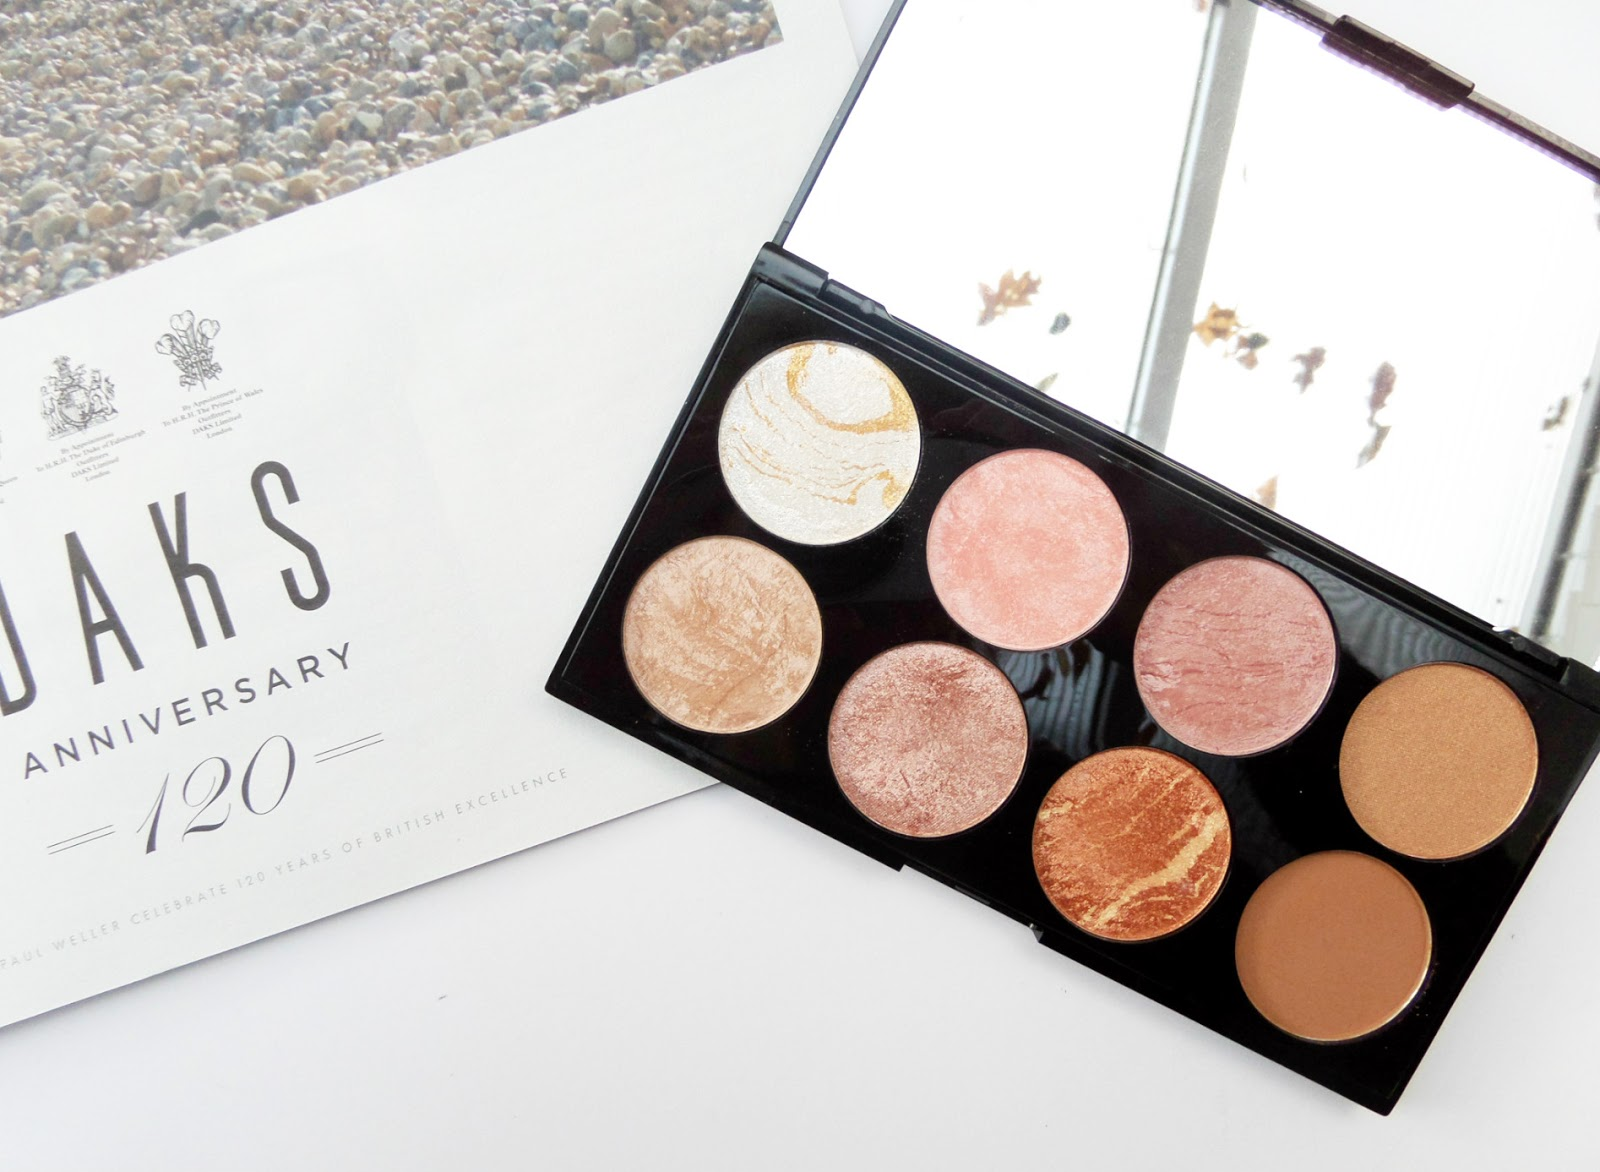 The Makeup Revolution Ultra Blush and Contour Palette in Golden Sugar Review